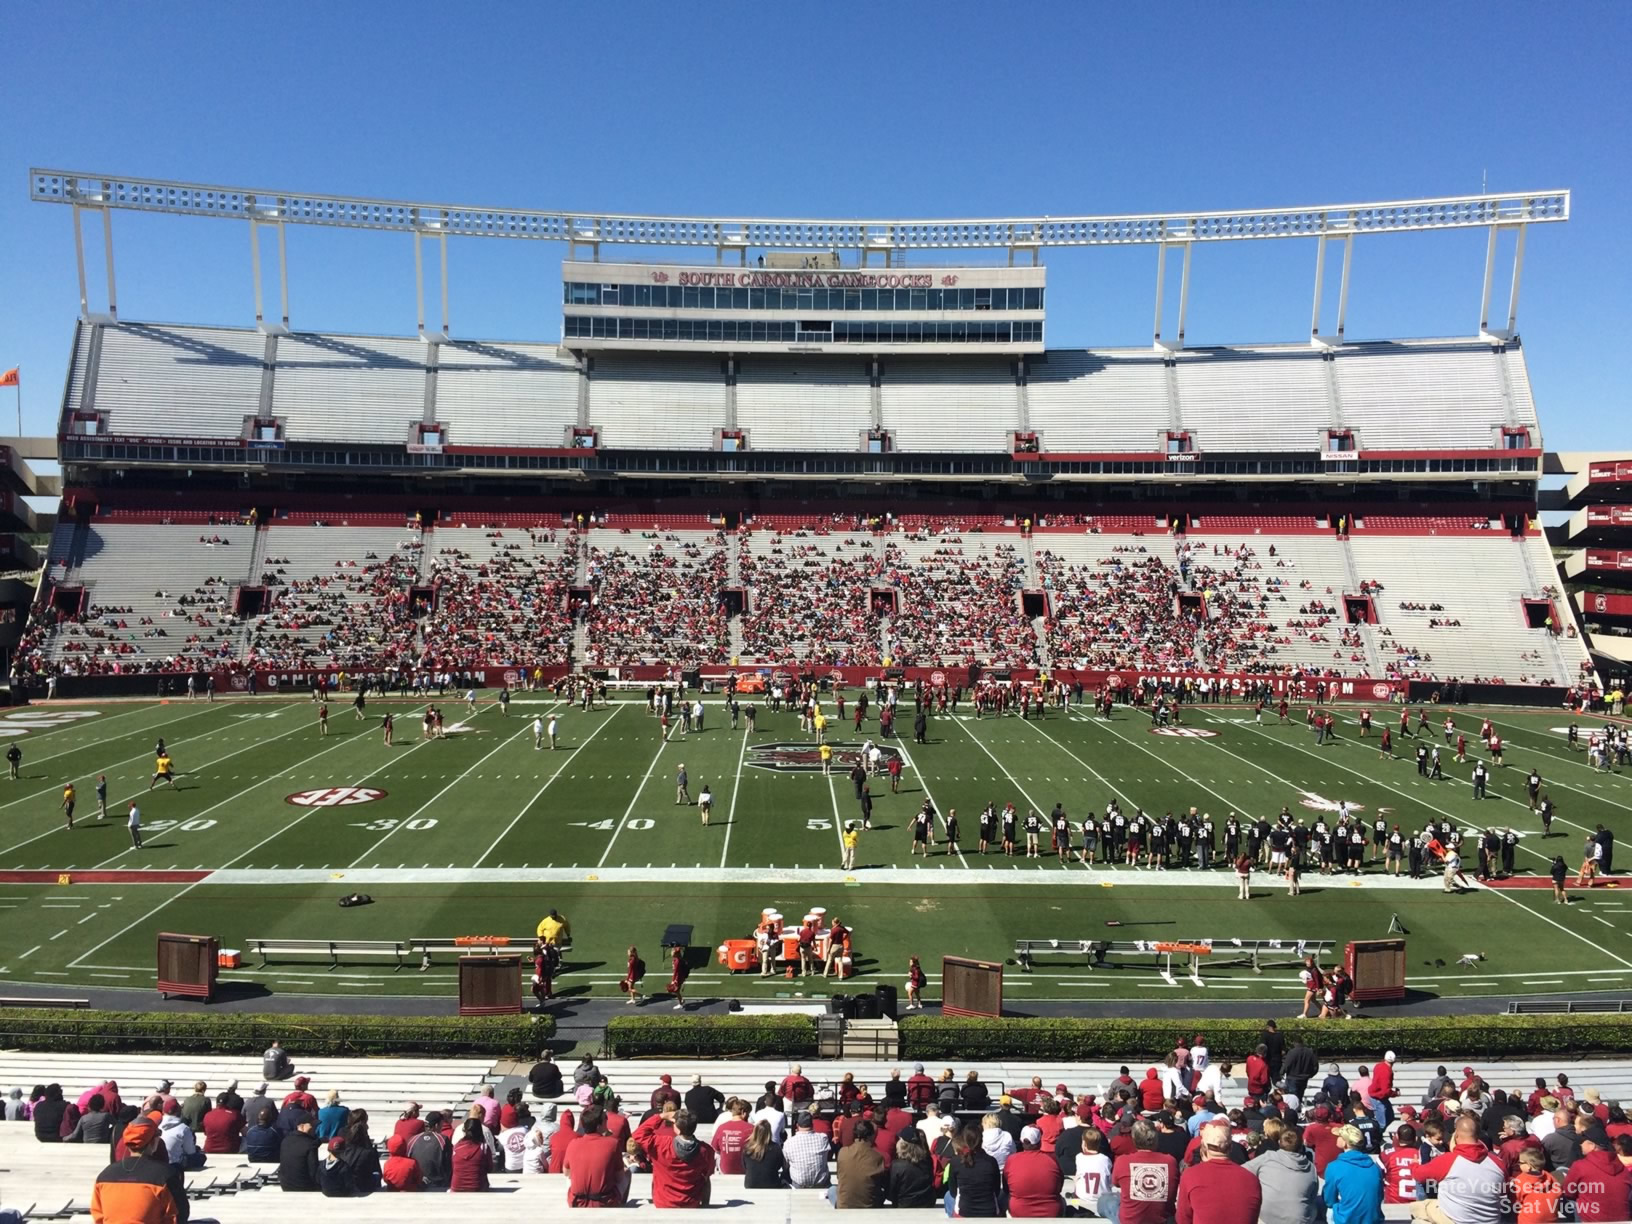 williams brice stadium Just across the street from williams-brice stadium at the corner of bluff road and south stadium drive—where ownership affords you a very unique opportunity to entertain family, friends and business associates in a variety of ways, which include luxurious one, two and three bedroom condominiums and prime game day parking options.